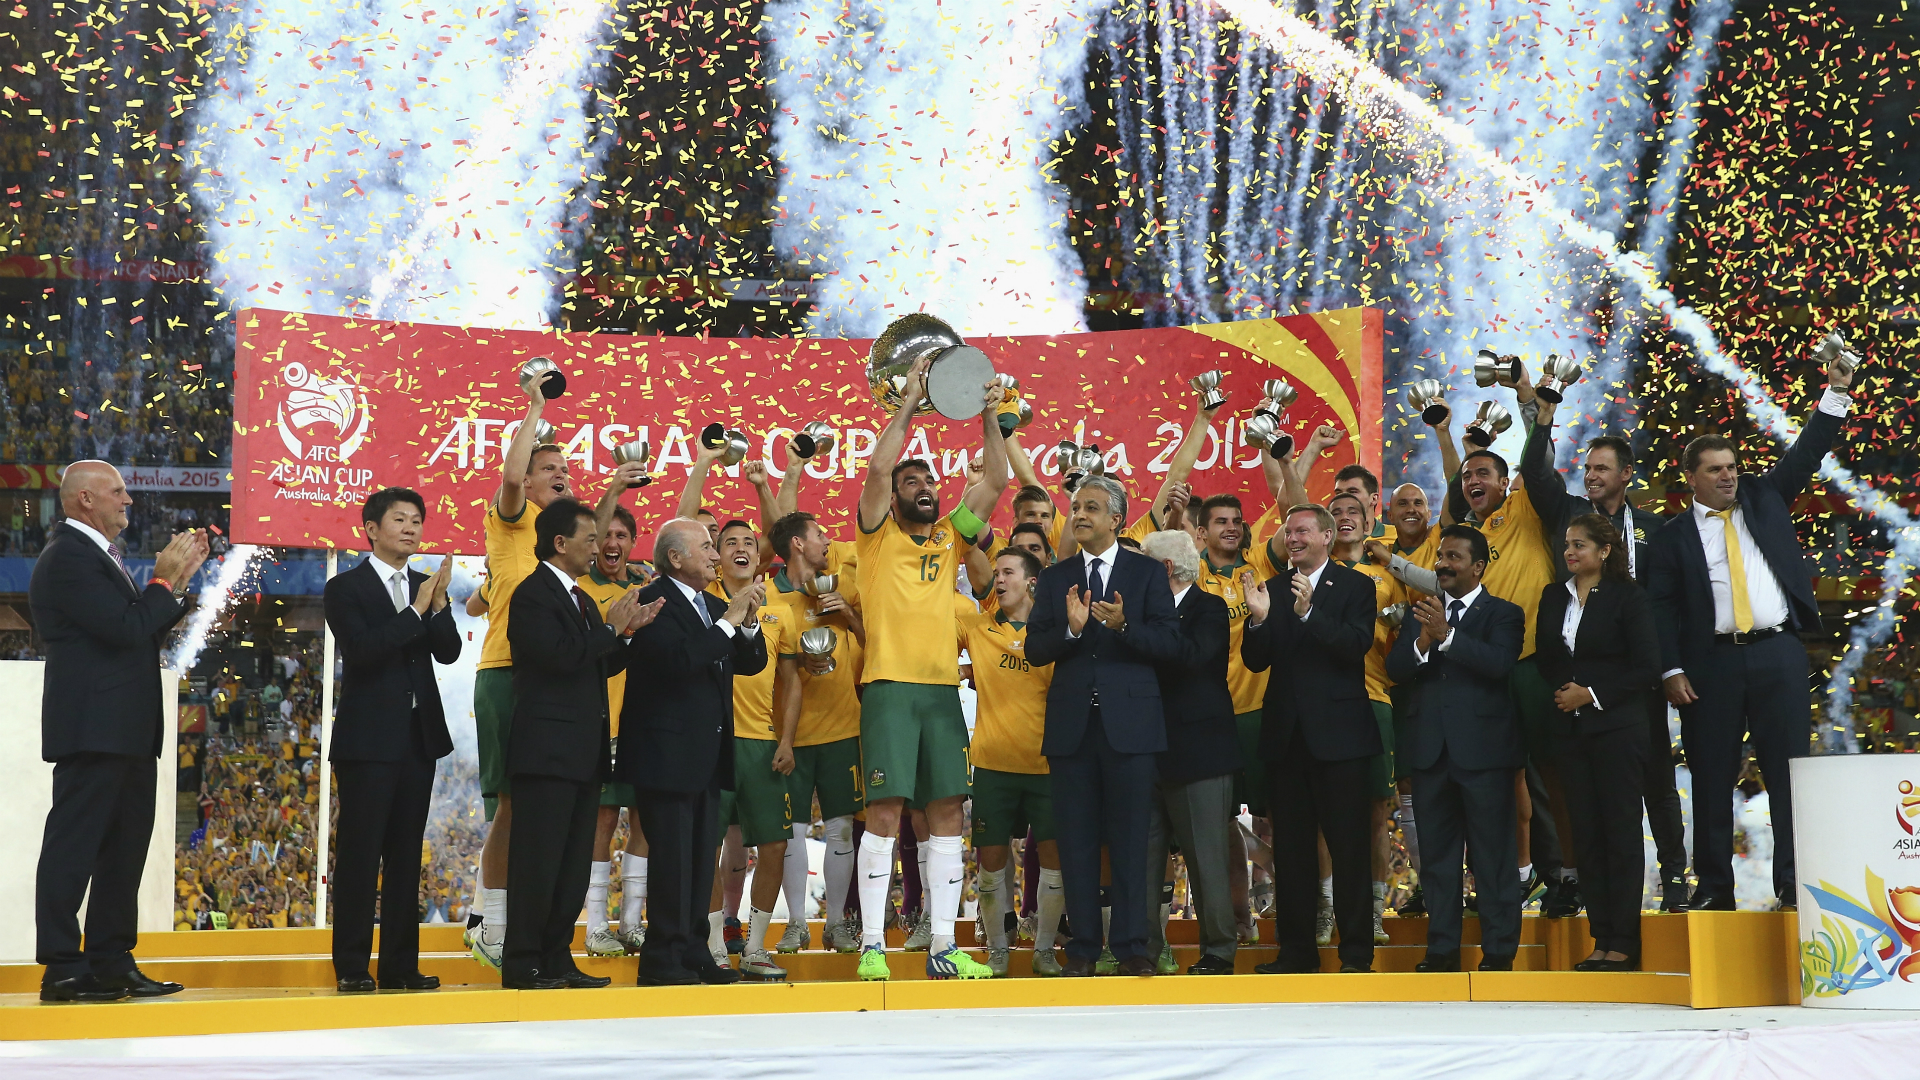 Socceroos Asian Cup 2015